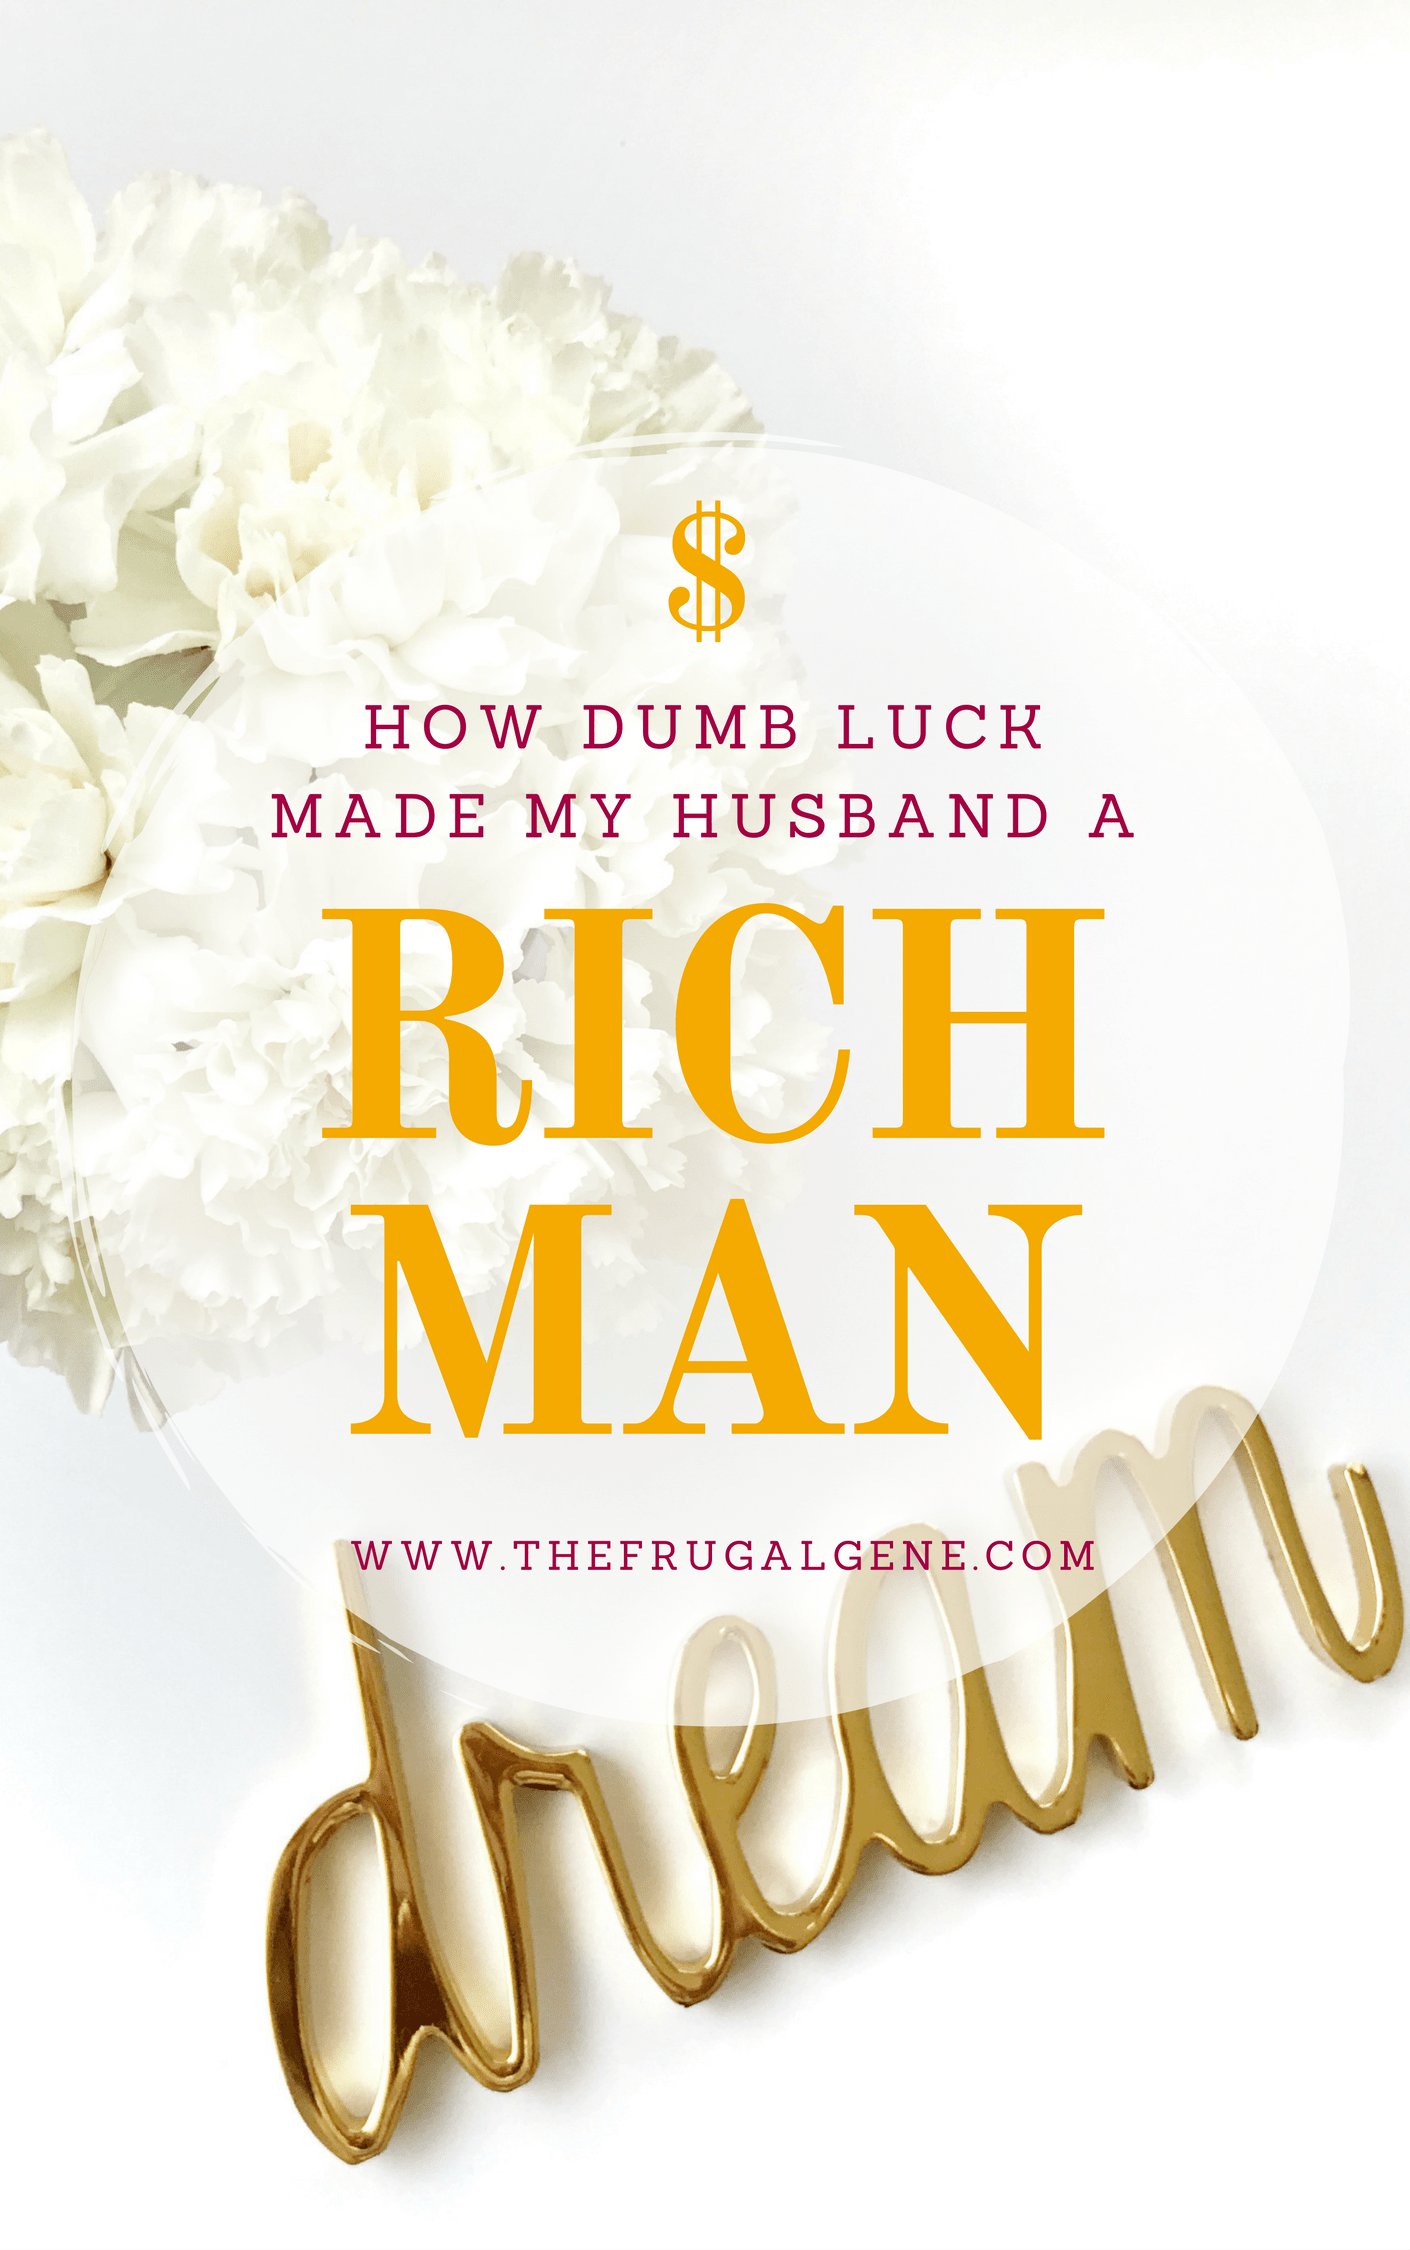 How Dumb Luck Made My Husband a Rich Man